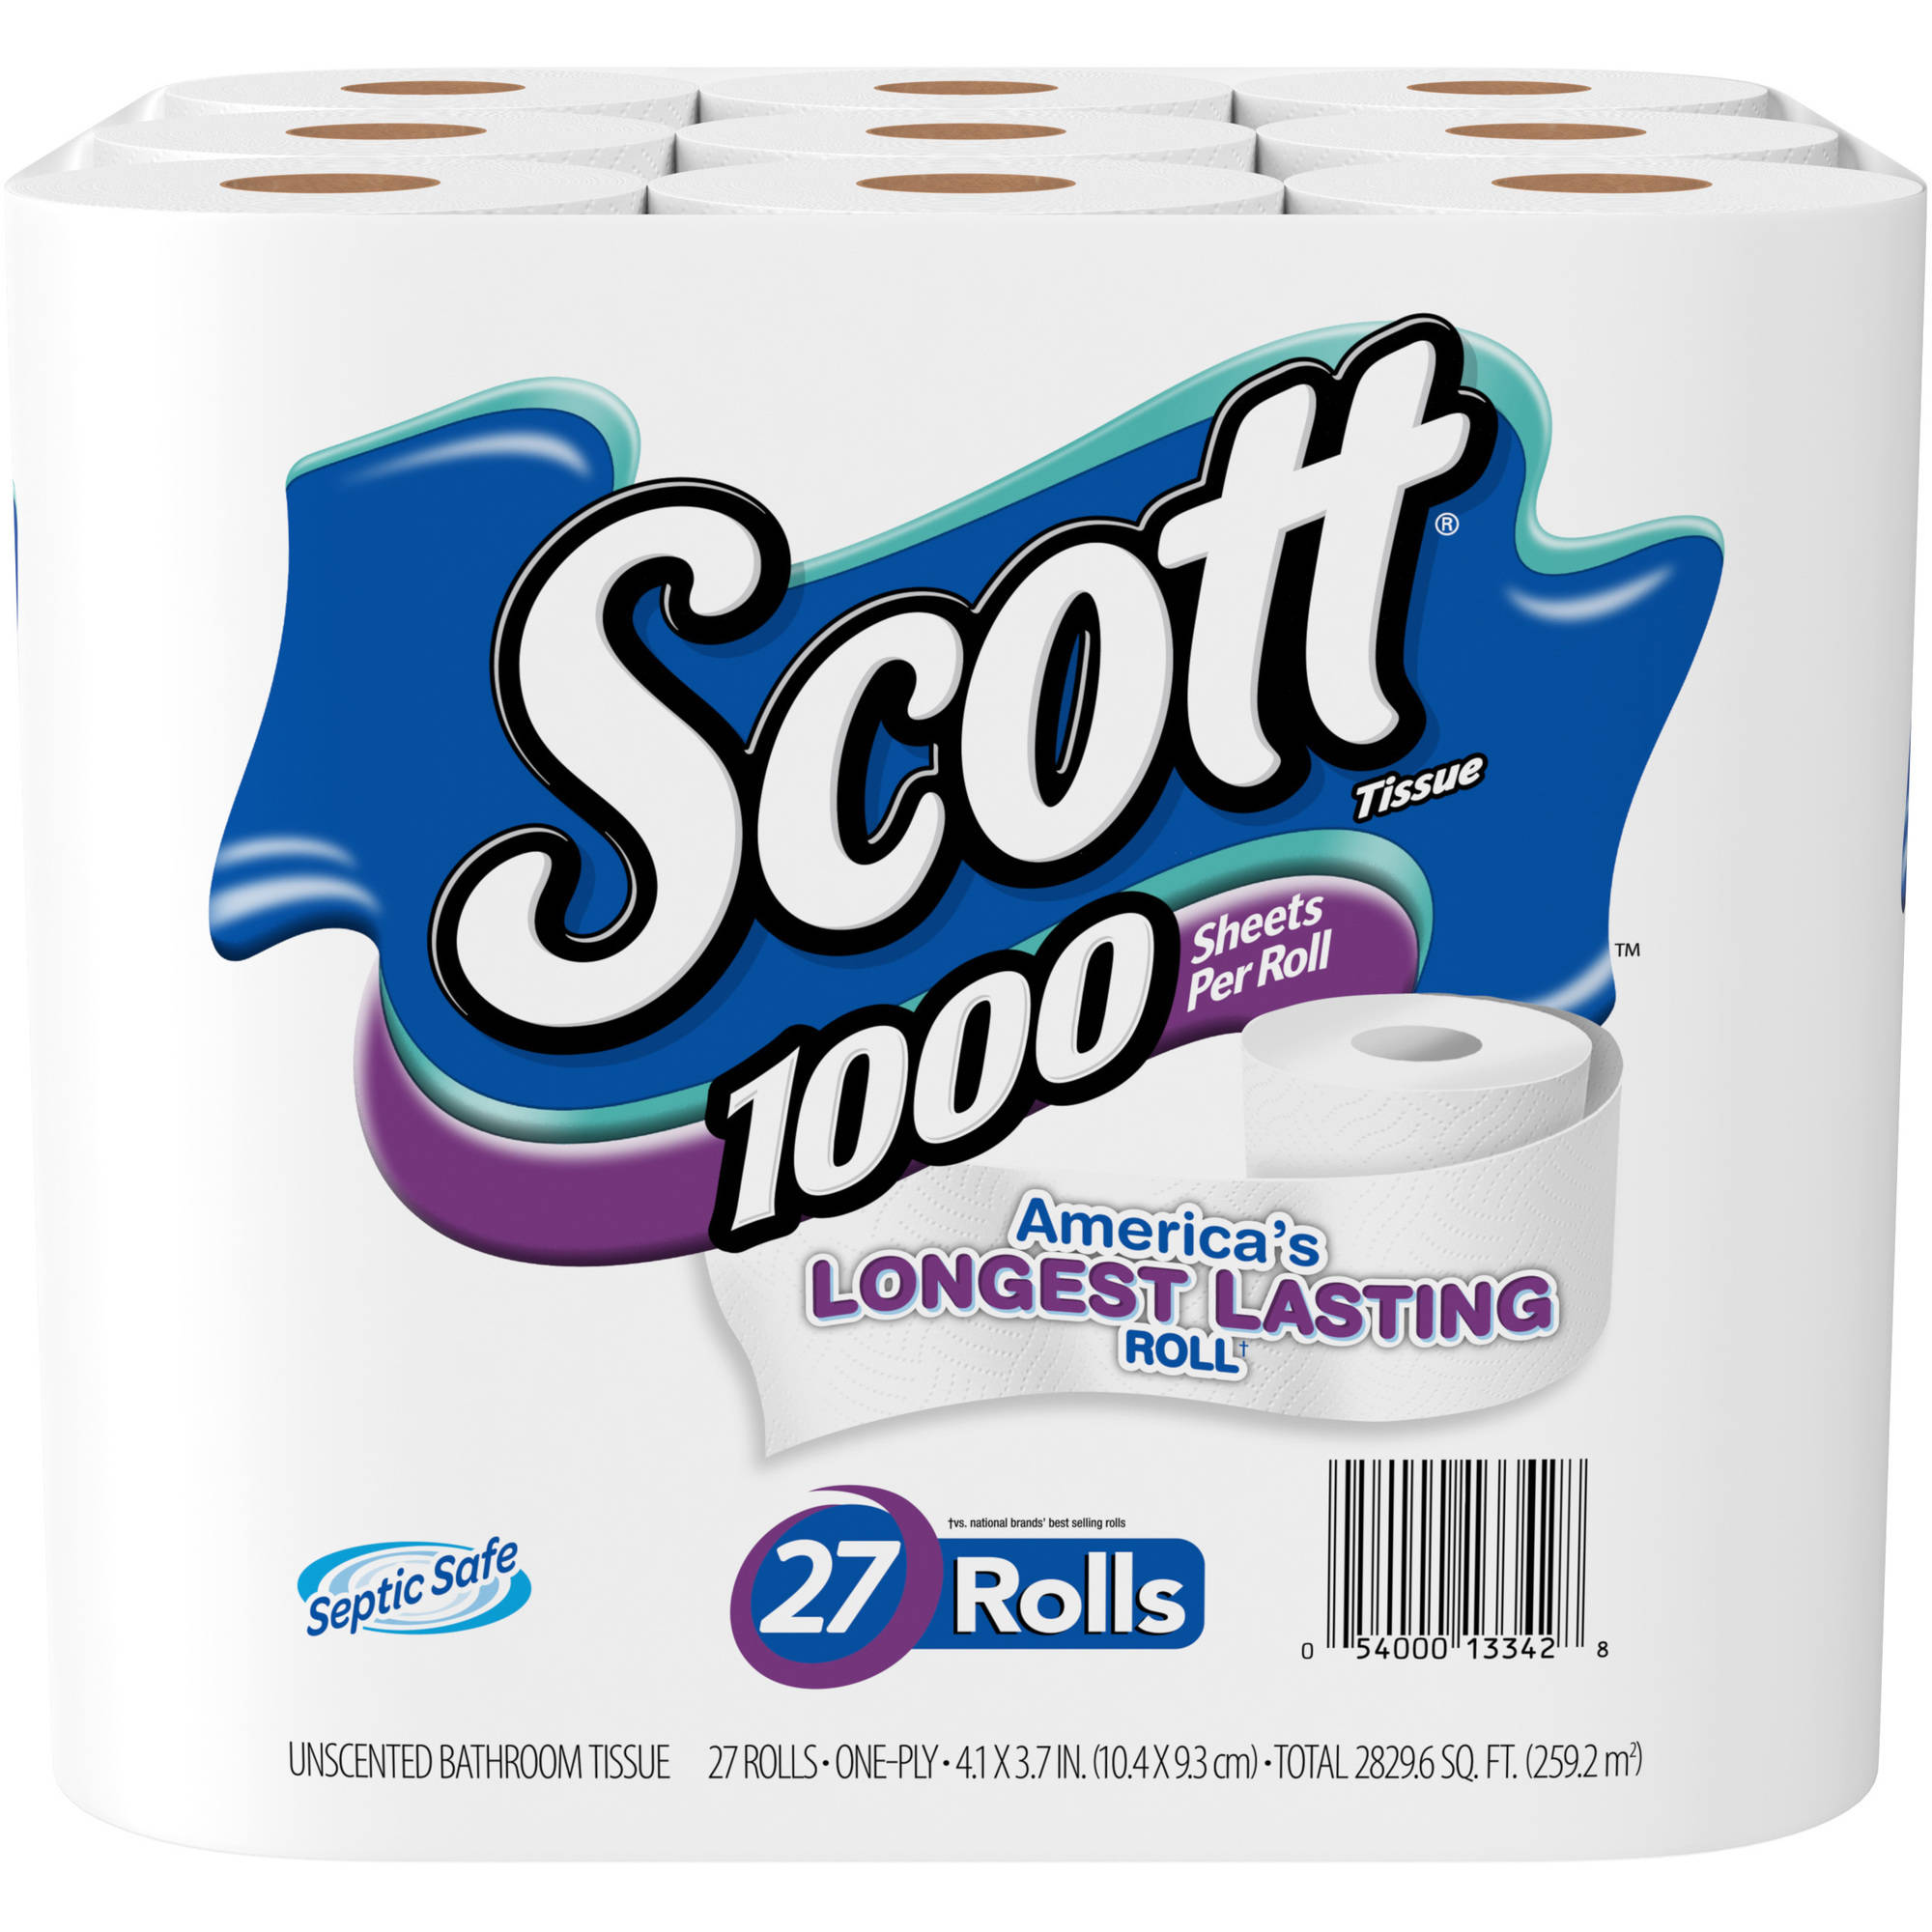 Scott Tissue 1000 Sheets Unscented Bathroom Tissue, 100 sheets, 27 rolls